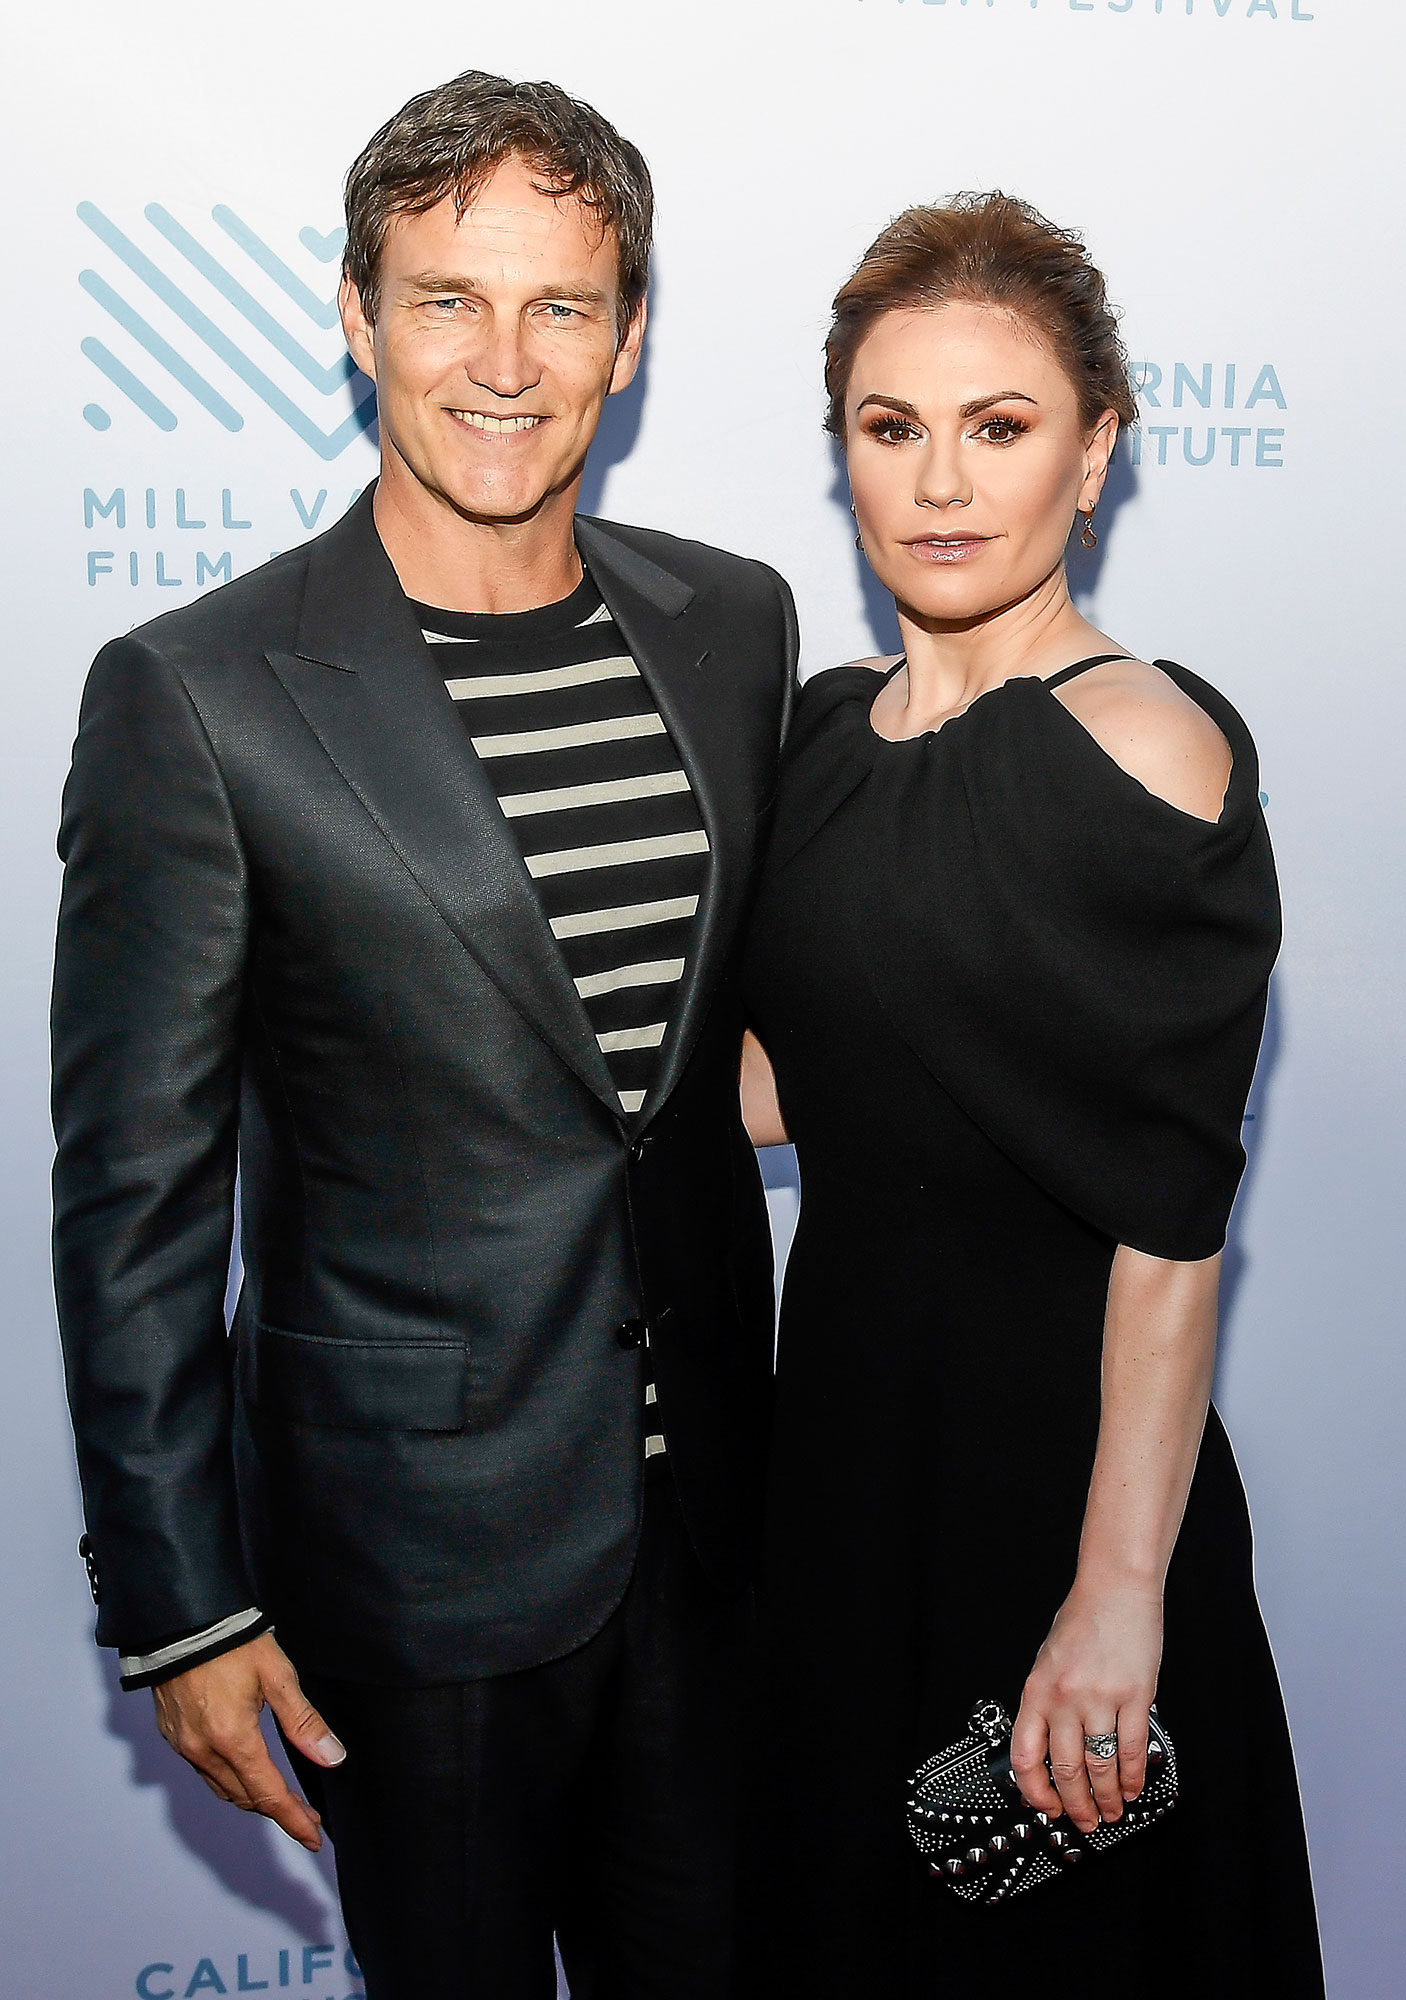 Anna Paquin Says She and Husband Stephen Moyer Are 'Best Friends' - (L-R) Actor & Director Stephen Moyer and Actress Anna Paquin attend the Premiere of 'The Parting Glass' at the 41st Mill Valley Film Festival at Sequoia Theater on October 6, 2018 in Mill Valley, California.